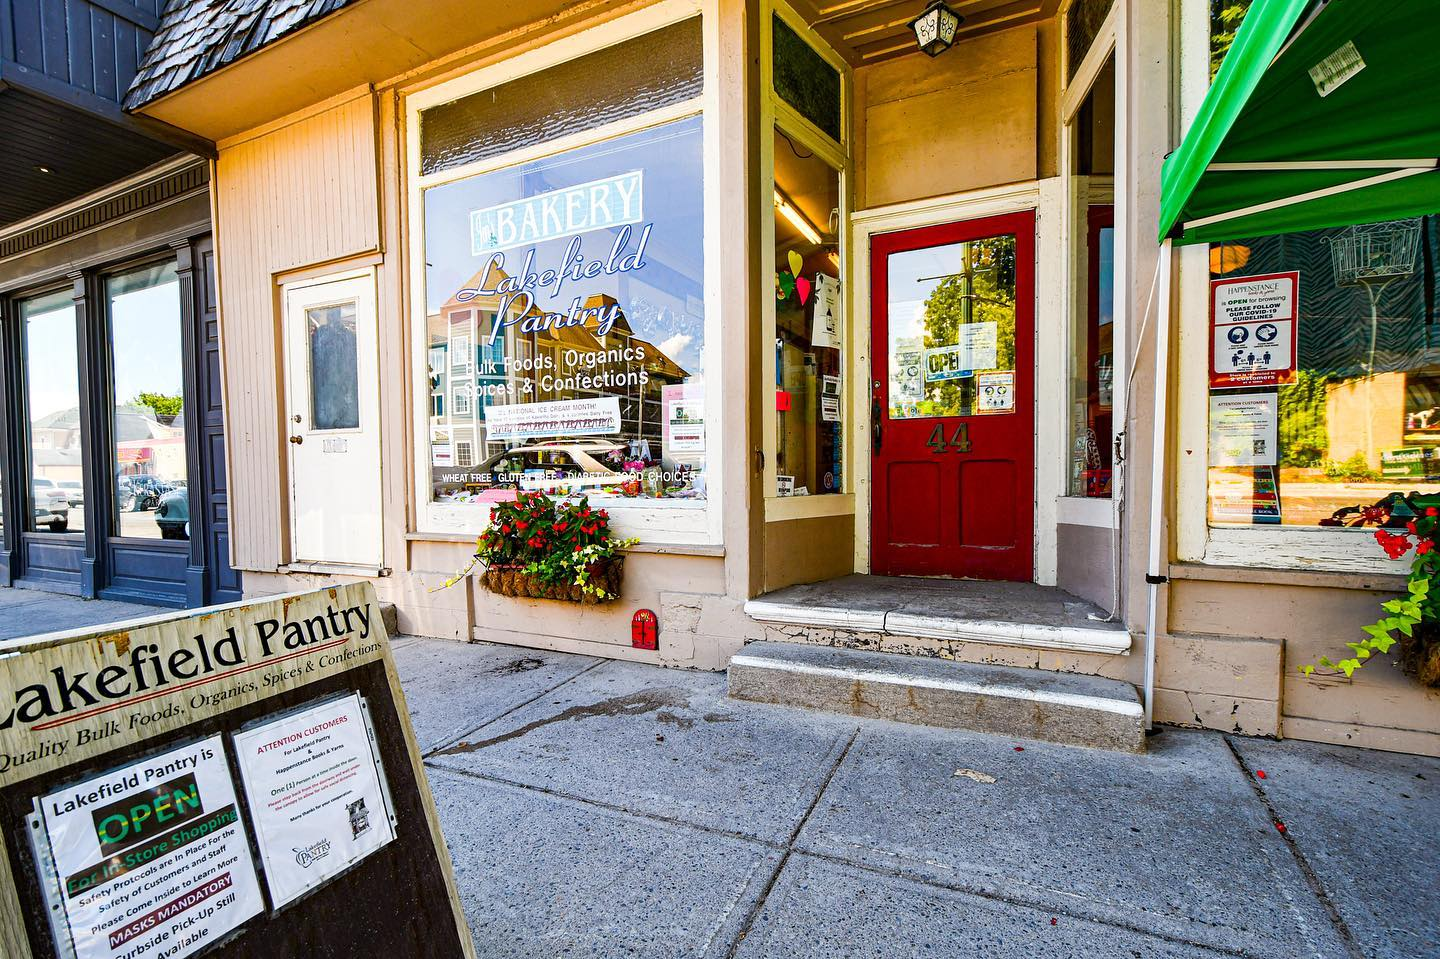 Lakefield Pantry storefront